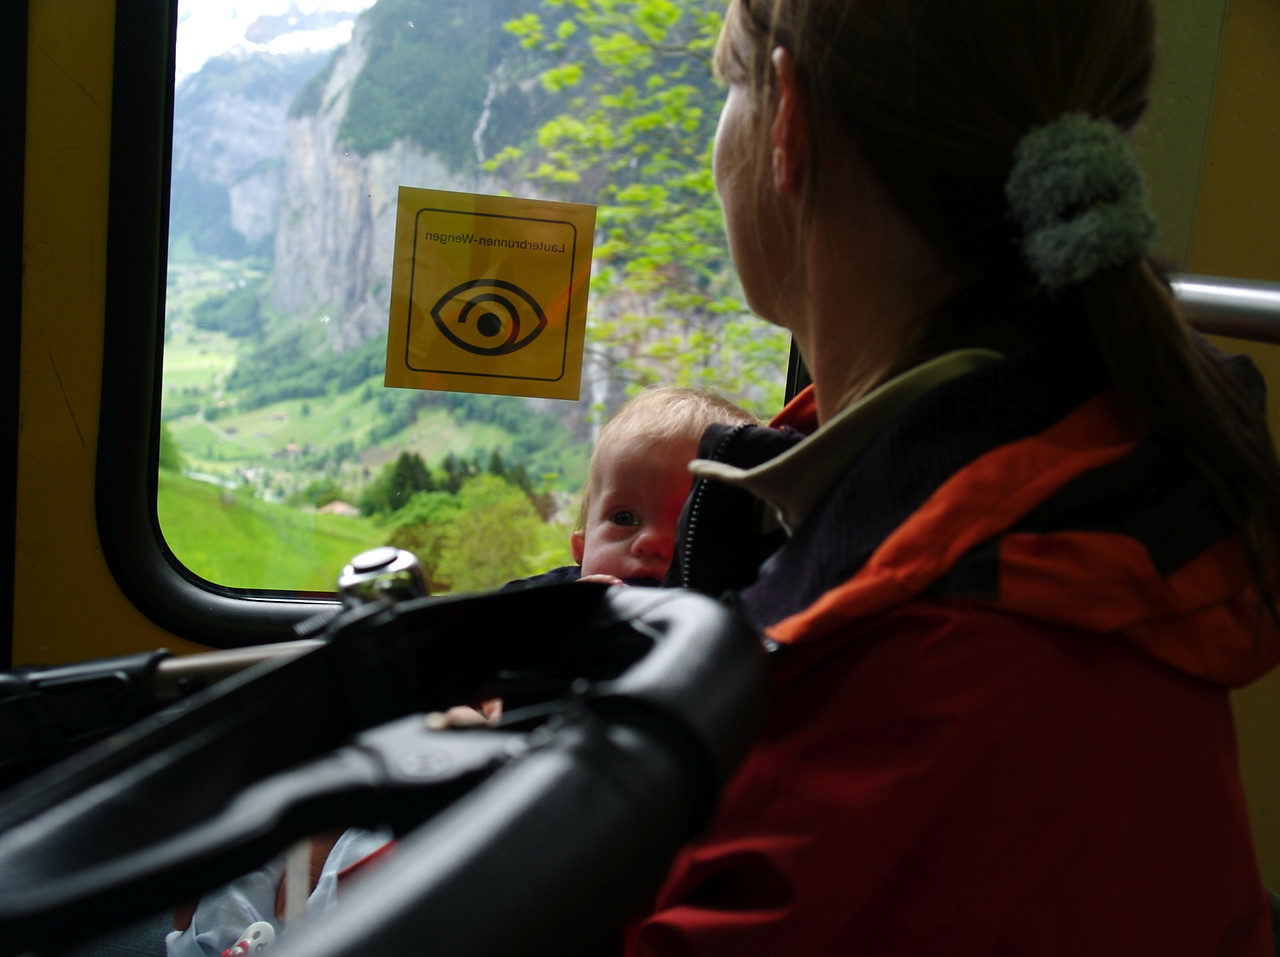 Monday 29th May 2006 - Cai admires the view from the train on the way down from Wengen, he prefers the wall on the other side to the valley with the waterfall.<br /> <br /> We had quite an eventful week, On Monday Cai was very restless all night and although the nurse was there, we could just hear the pump and alarm all night. We were really needing and looking forward to a good nights sleep on Tuesday, when the nurse called to say she was ill and couldn't make it. It was a little more than my body could handle and although we both slept soundly on Wednesday night I picked up a cold and still feel groggy.<br /> <br /> We had planned to have a trial weekend away with Cai, just to see whats possible, some parents in the same situation never leave the house, we however are determined to give him as normal a life as possible.<br /> <br /> We made it okay to wengen and the weather was fine, we caught the train up to wengenalp and then walked back with Cai. It was a bit steep in places but we enjoyed it. Friday night didn't go so well though with Cai beeing awake from 2:30 until 3:30 causing the alarm to go off regularily and the suction pump running which all sounded really loud in the still of the night he had another episode an hour later and needed quite a lot of suction before after and in between. We felt we must have kept the whole building awake and thought it may be best to return home.<br /> <br /> Next morning I bumped into the nice couple (base jumprers) staying in the room opposite ours and sheepishly asked them if we had kept them awake, they replied they hadn't heard a thing, we checked with Angela our hostess and she hadn't had any complaints or heard anything either so we decided to stay. The second night was much better, Cai (and us) slept from 10.30 pm until 8 am with the alarm only sounding a couple of times during the night. (all five of us stayed in the same room).<br /> <br /> but WE DID IT! our first trip away with Cai, now we know we can do it we 